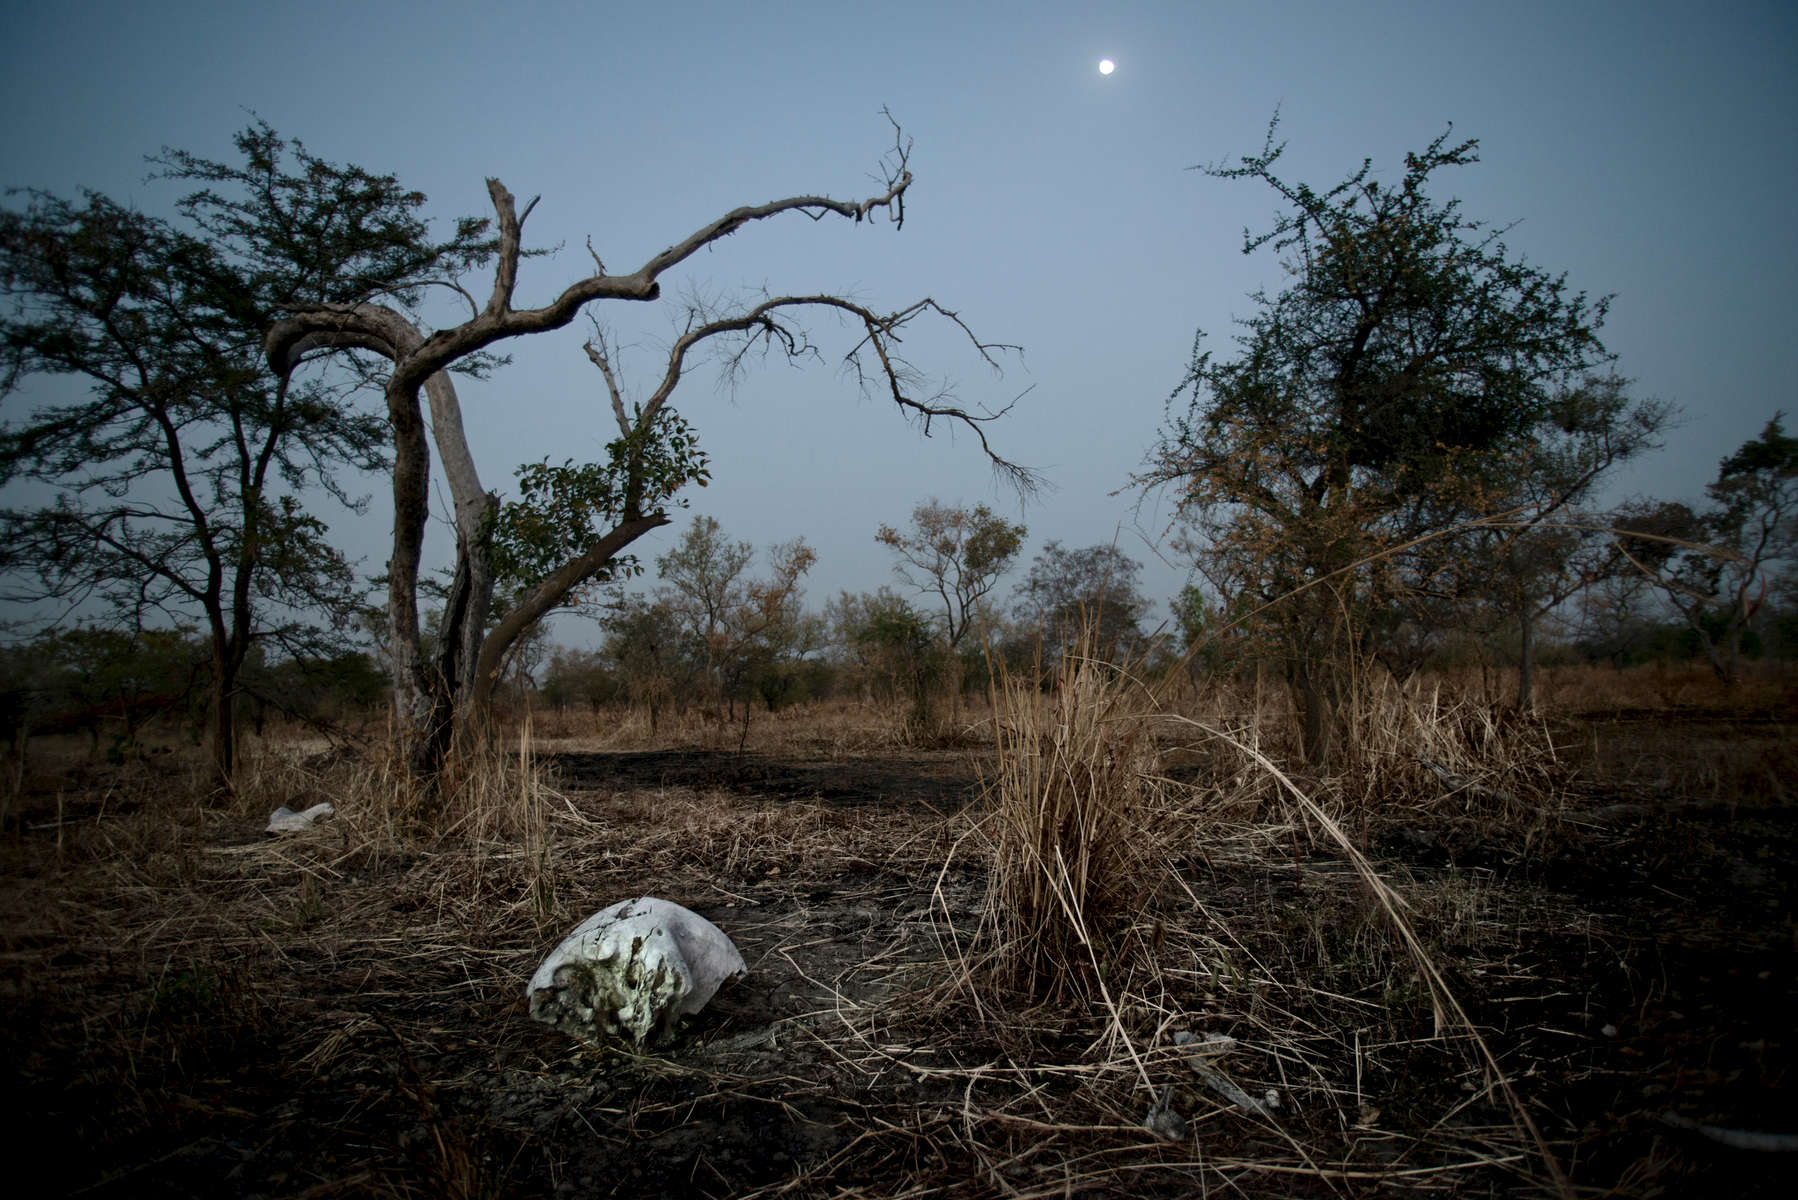 In March 2013 86 elephants, several of whom were pregnant, were reported to have been killed by poachers in Chad close to the border of Cameroon. Elephant bones are scattered across the massacre site.